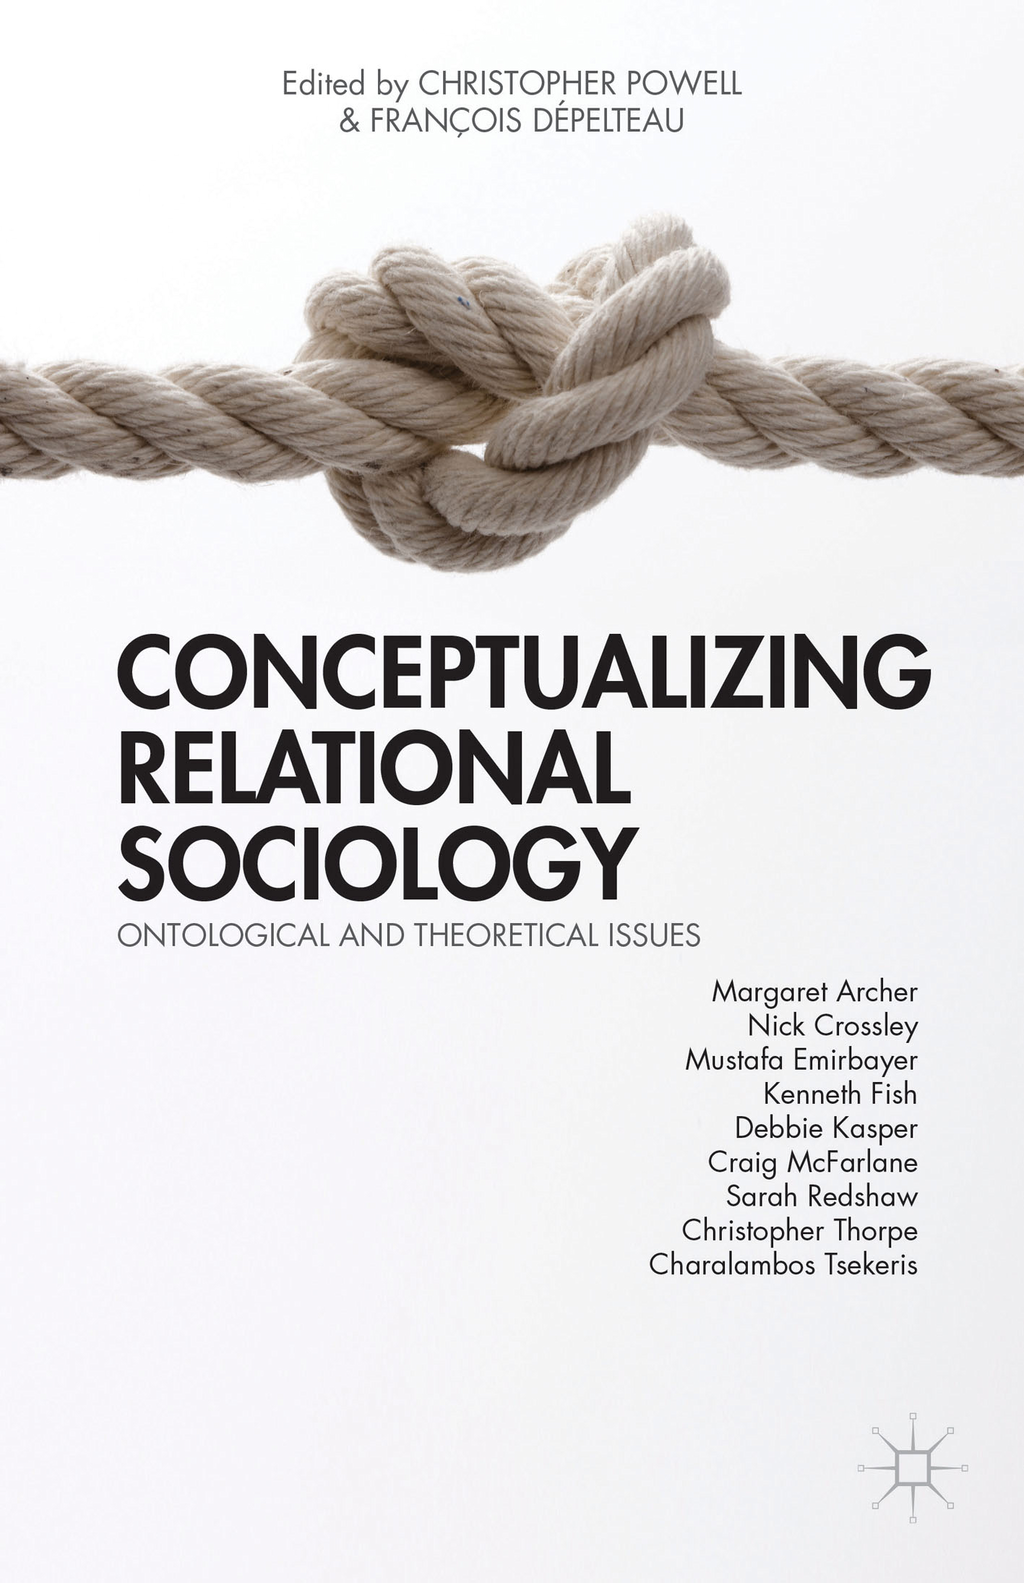 Conceptualizing Relational Sociology Ontological and Theoretical Issues